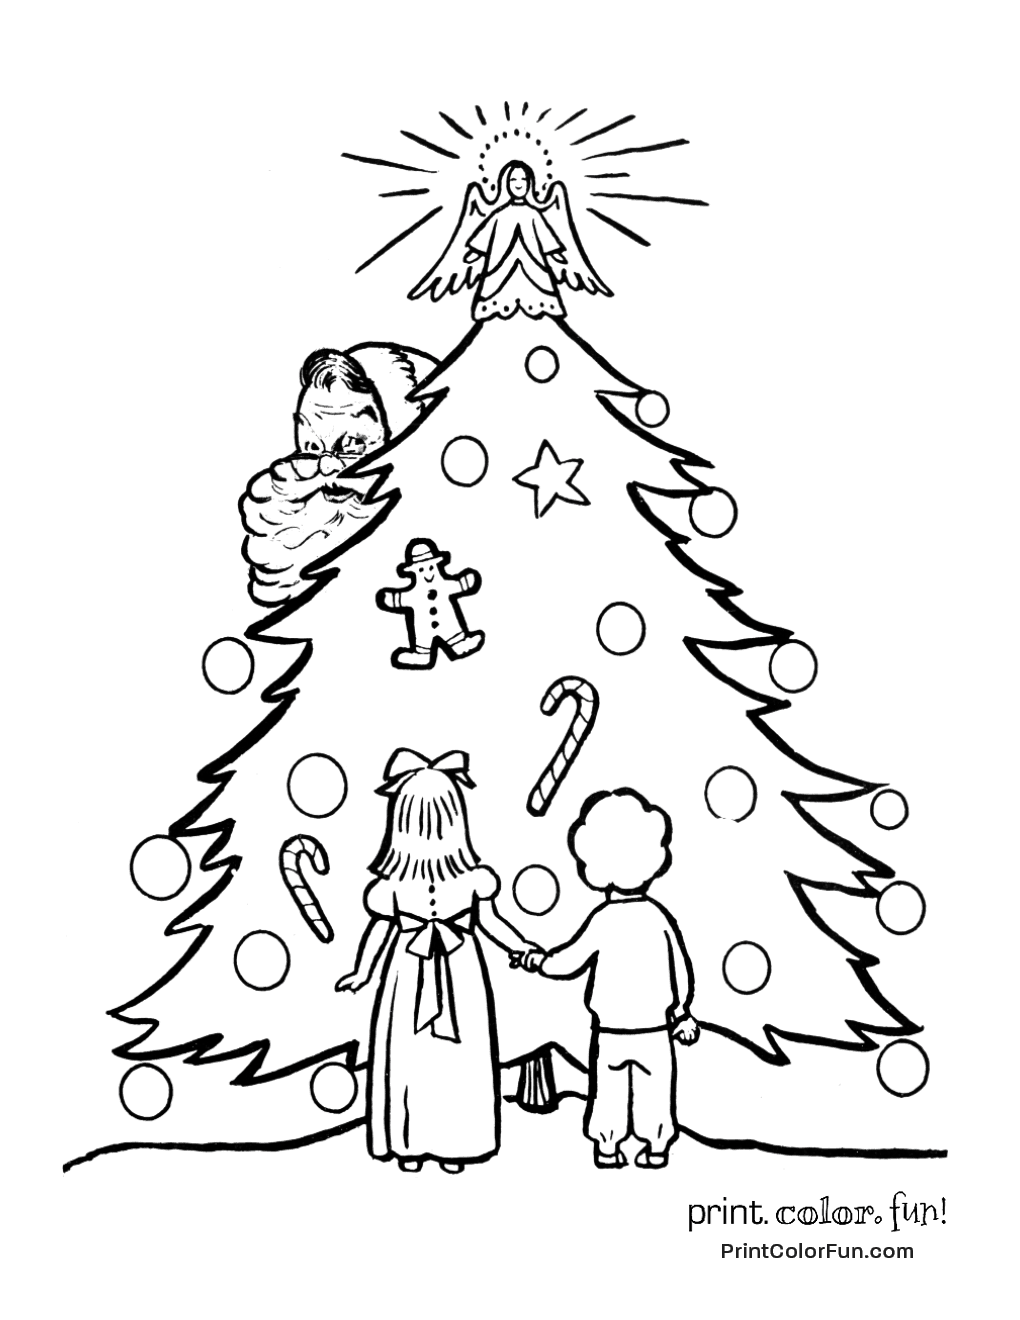 old fashioned halloween coloring pages | Retro Christmas tree with Santa coloring page - Print ...